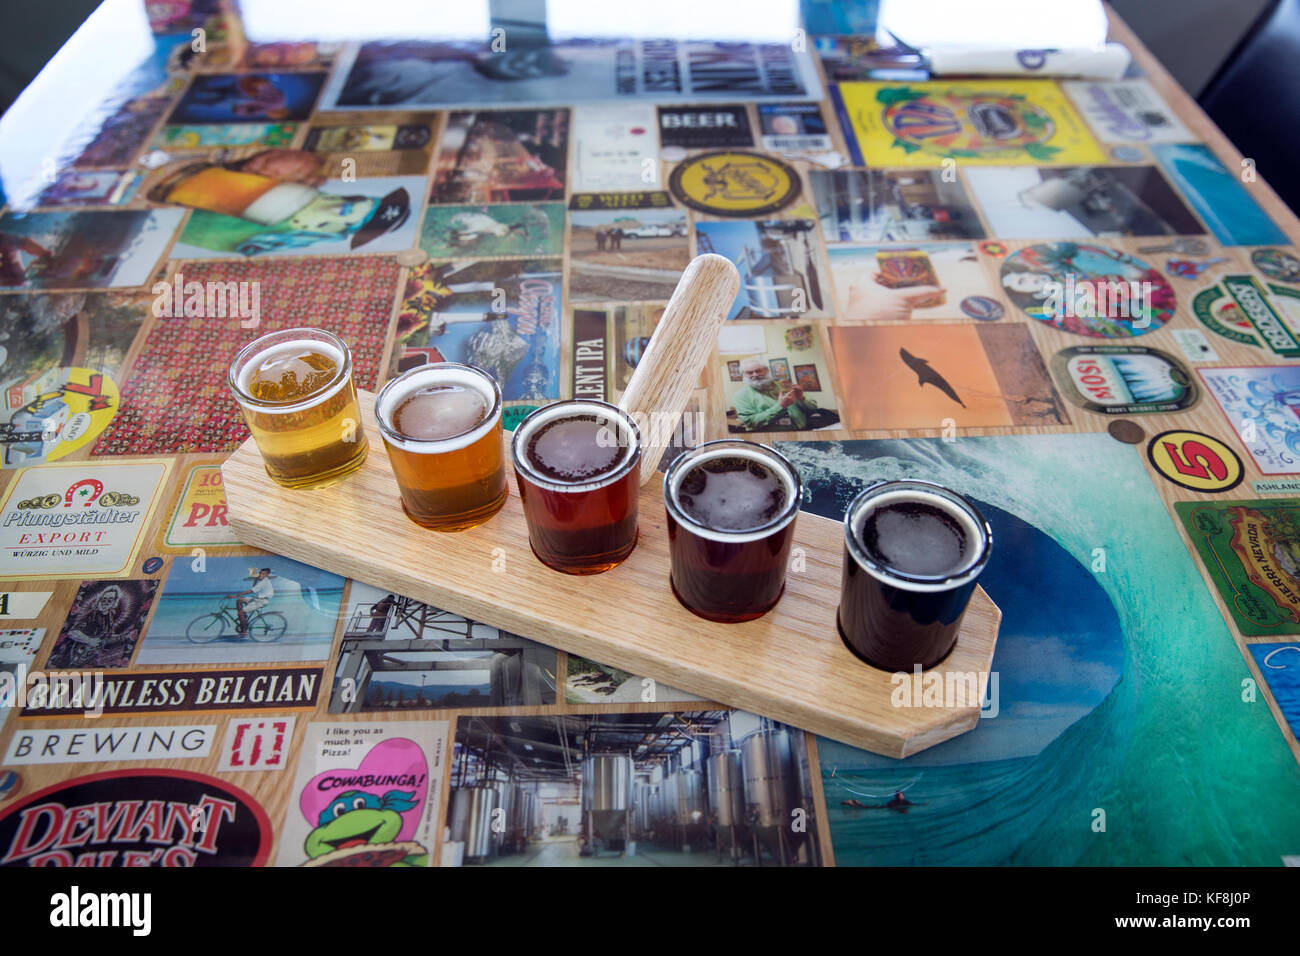 USA, Oregon, Ashland, a sample of beers brewed at the Caldera Brewery and Restaurant which includes lawnmower lager, - Stock Image